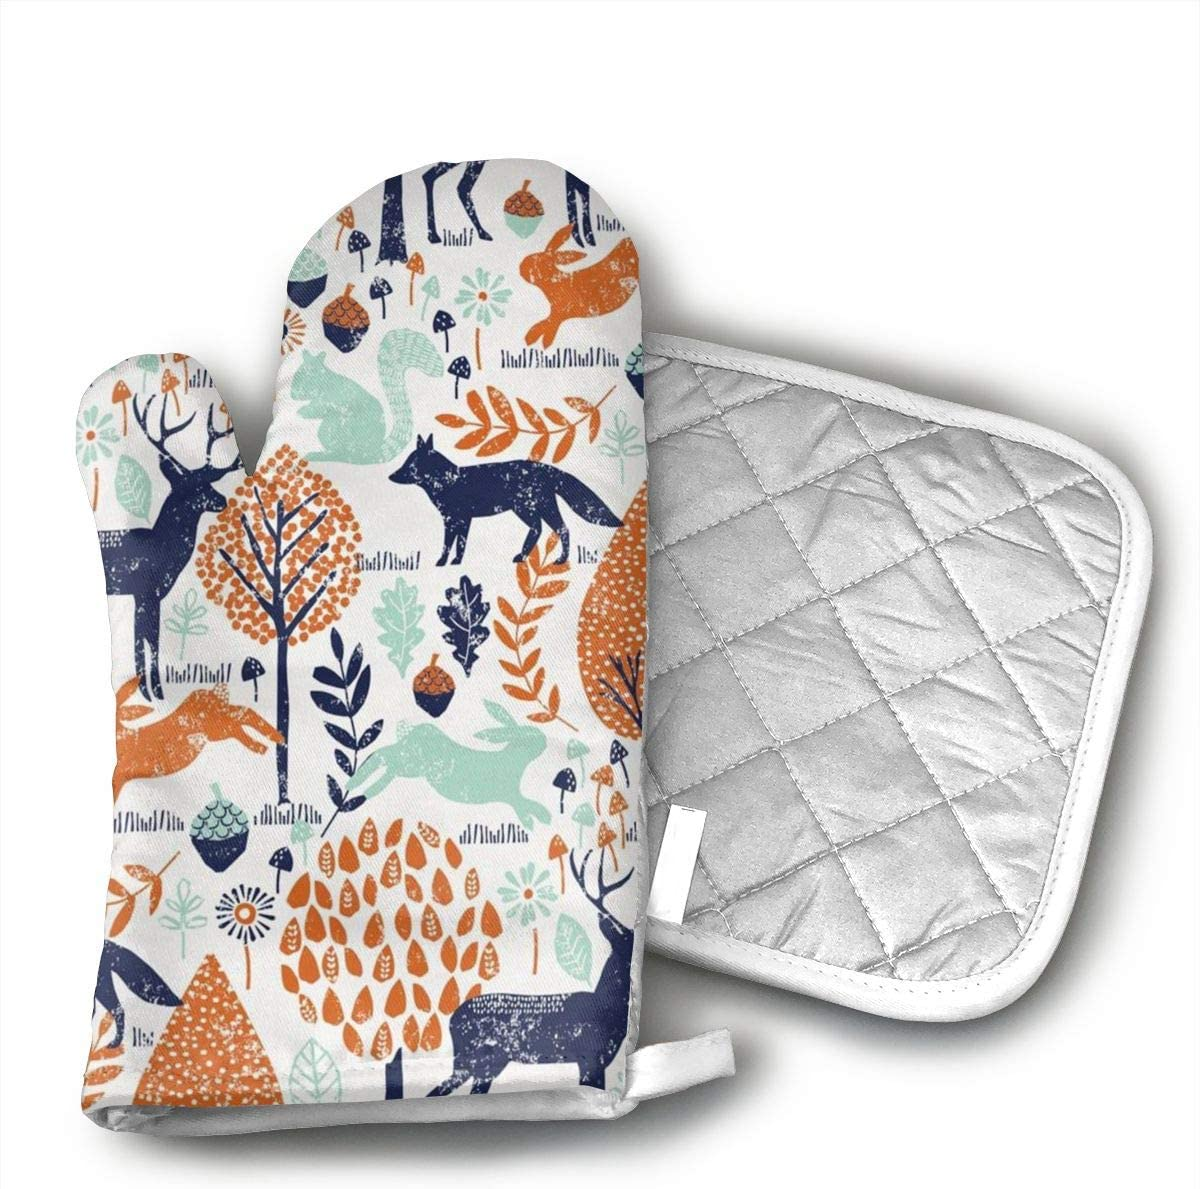 HGUIDHG DVIKH Navy and Orange Woodland Animals Oven Mitts+Insulated Square Mat,Heat Resistant Kitchen Gloves Soft Insulated Deep Pockets, Non-Slip Handles